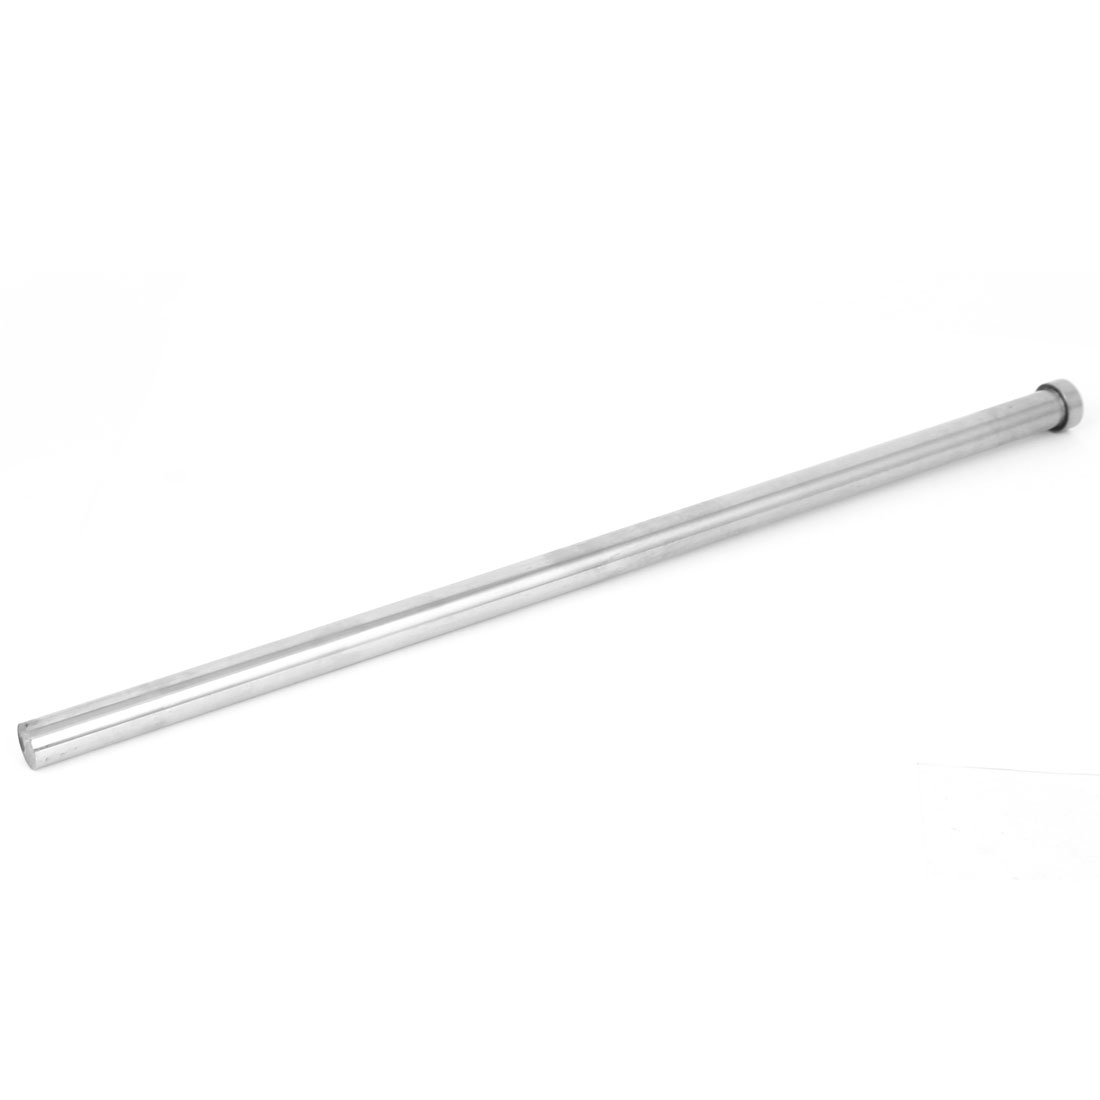 Mold Components Round Shape Straight Steel Ejector Pins Punches 16mmx450mm